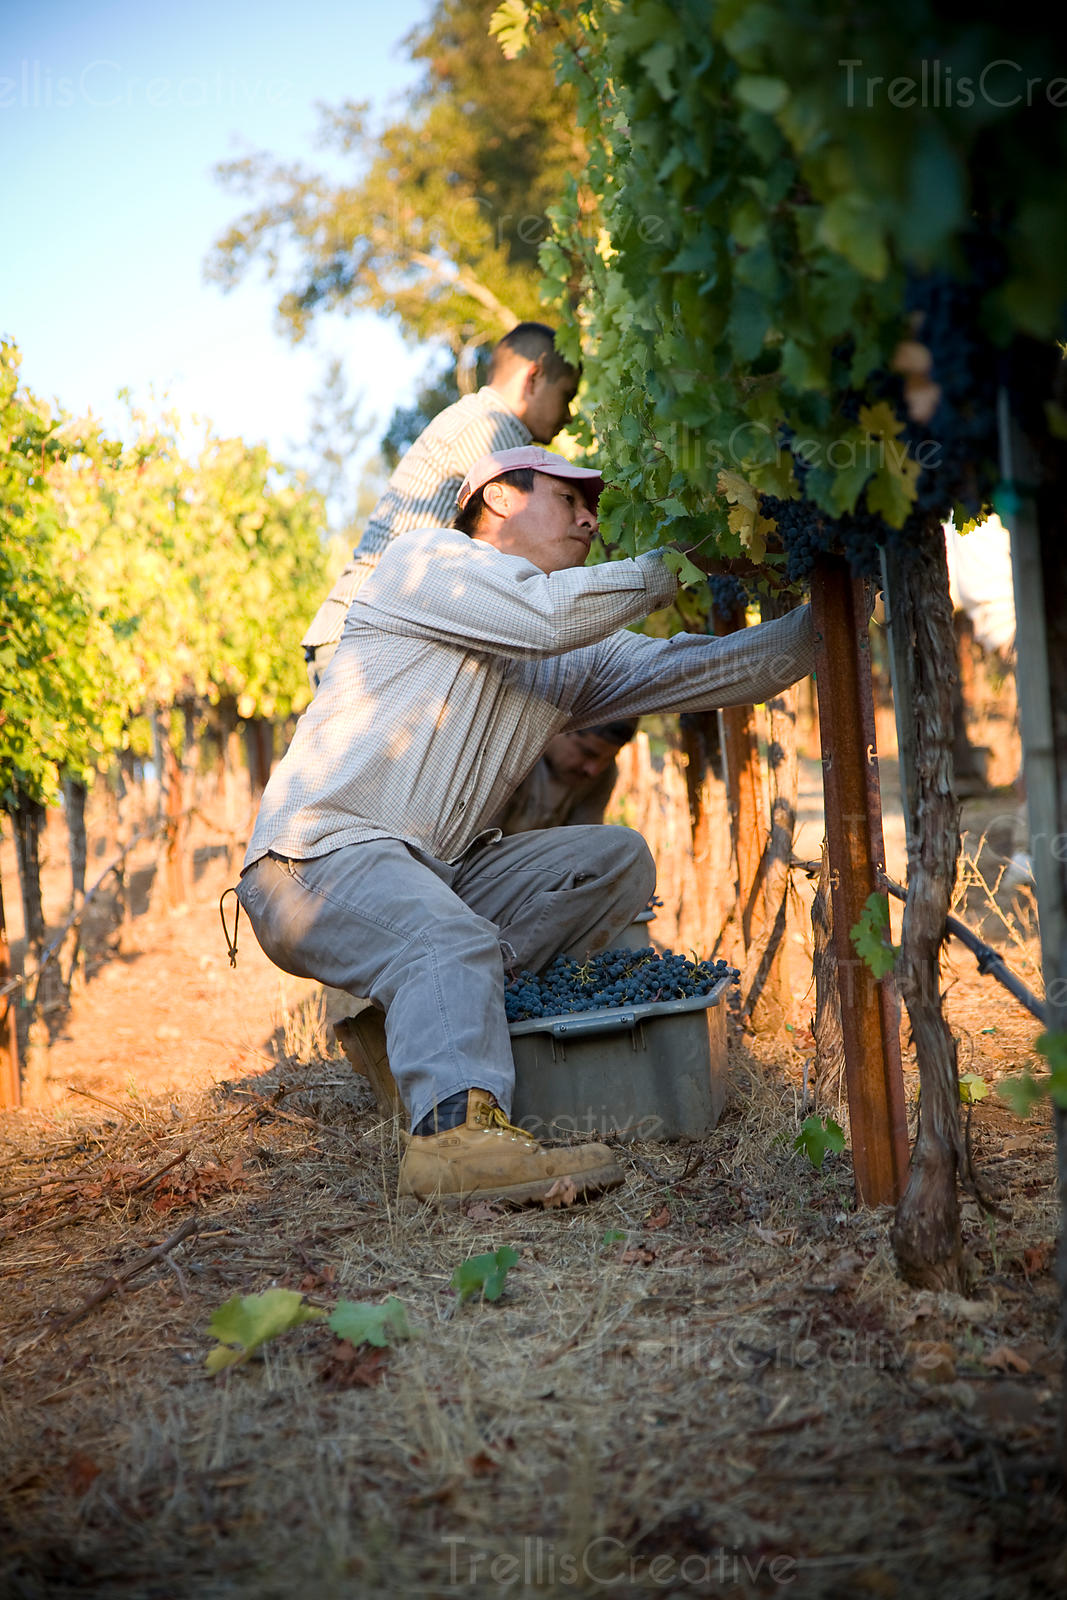 Latino worker harvests grapes at sunrise